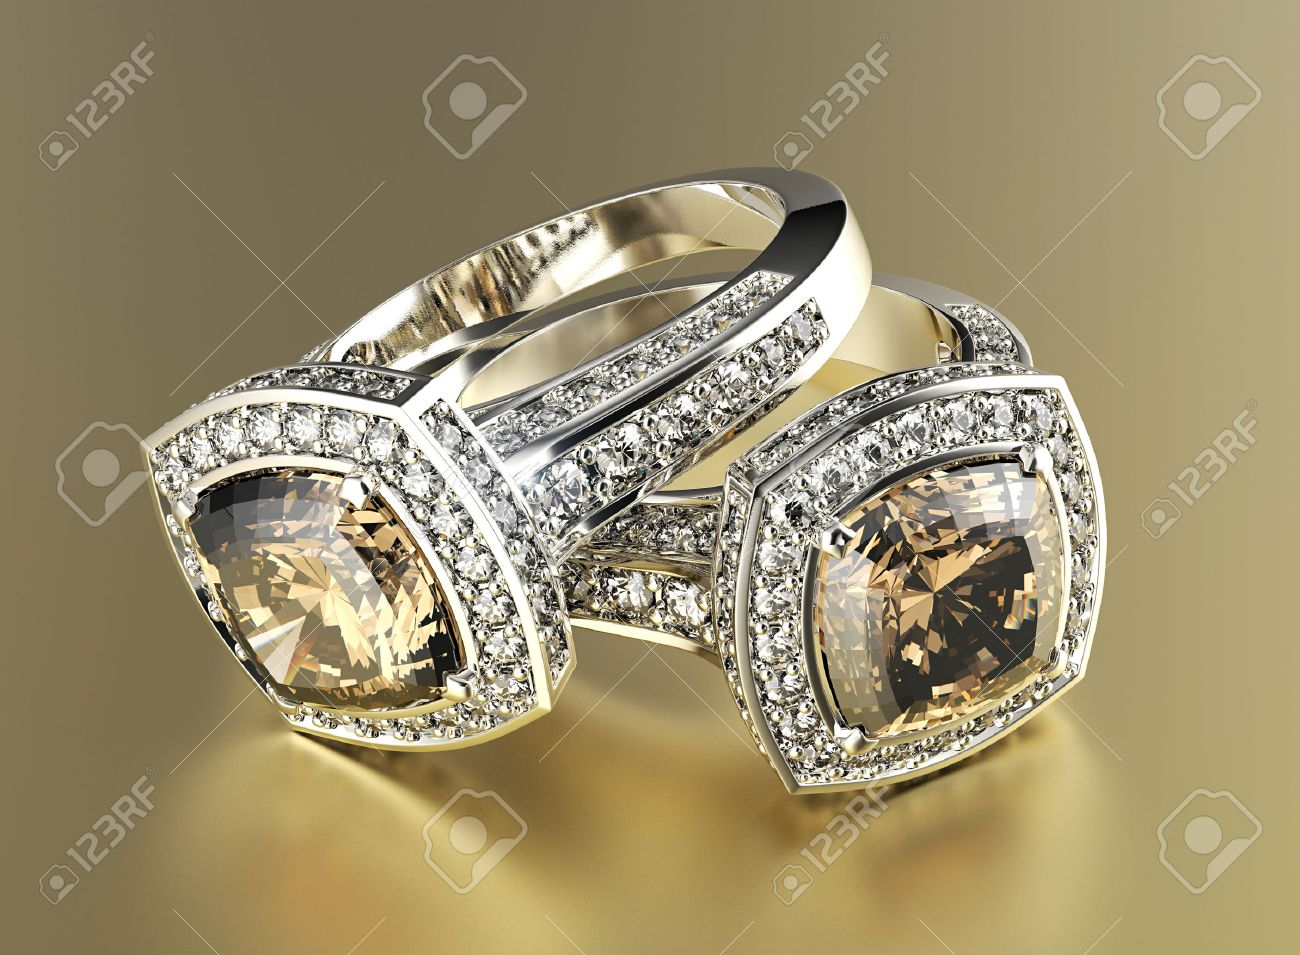 Golden Engagement Ring With Cognac Diamond Jewelry Background Stock Photo   38481548